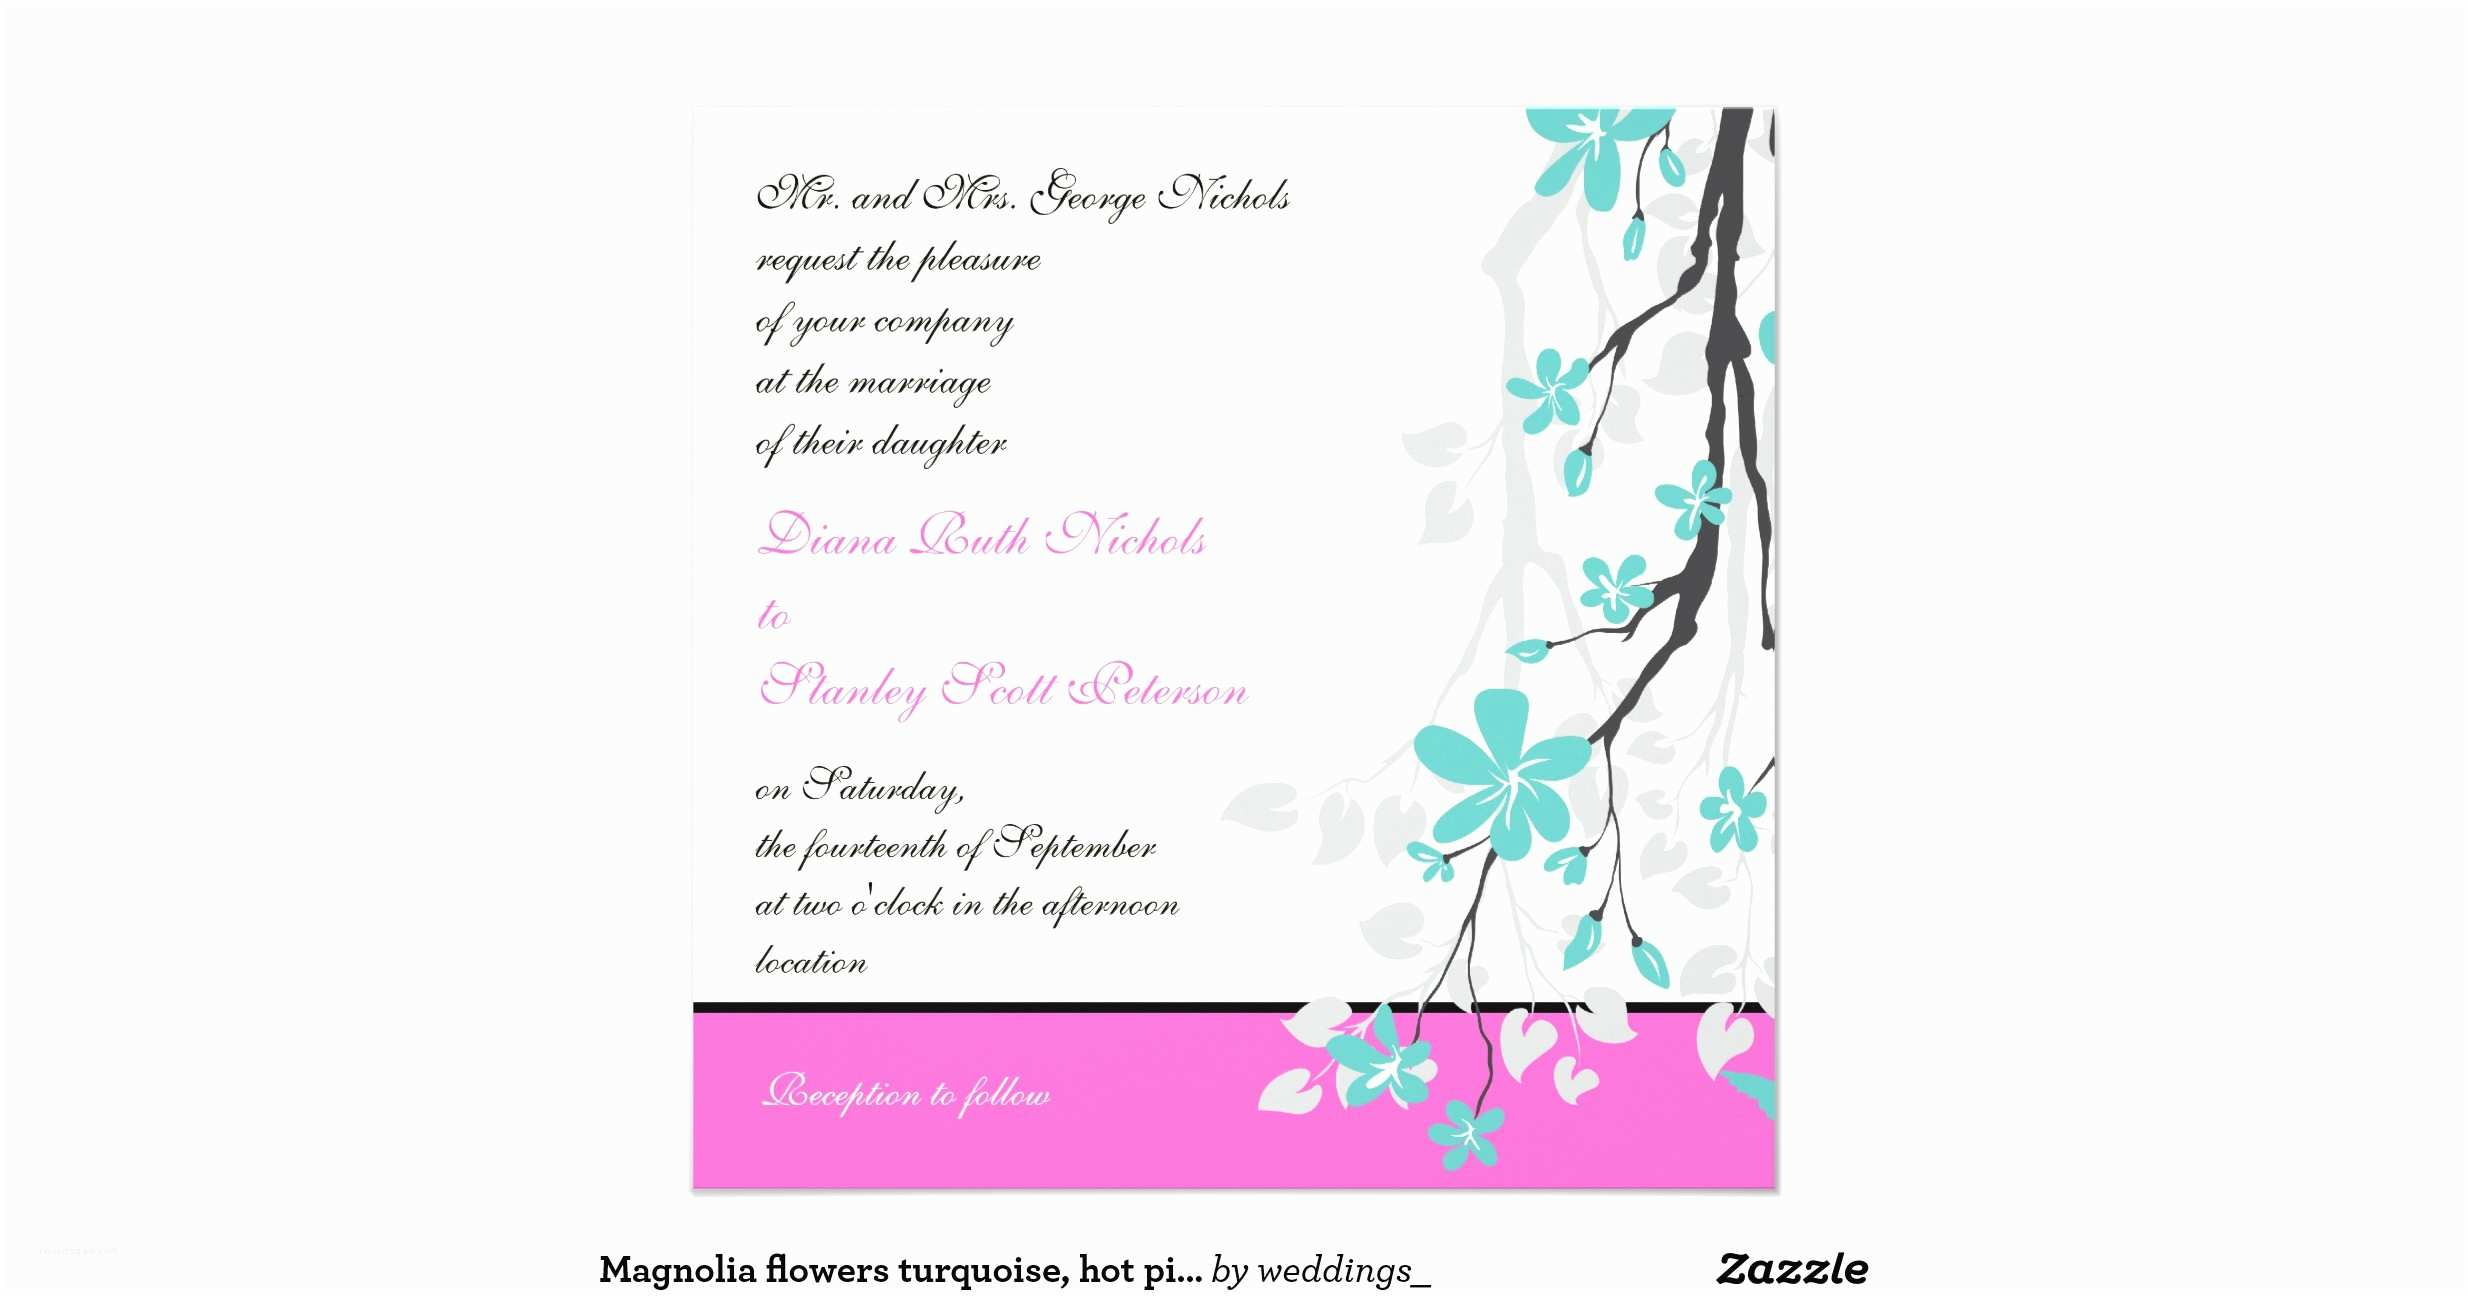 Turquoise and Hot Pink Wedding Invitations Magnolia Flowers Turquoise Hot Pink Wedding Invitation R57ec B04ab2af572f1e Zk9yv